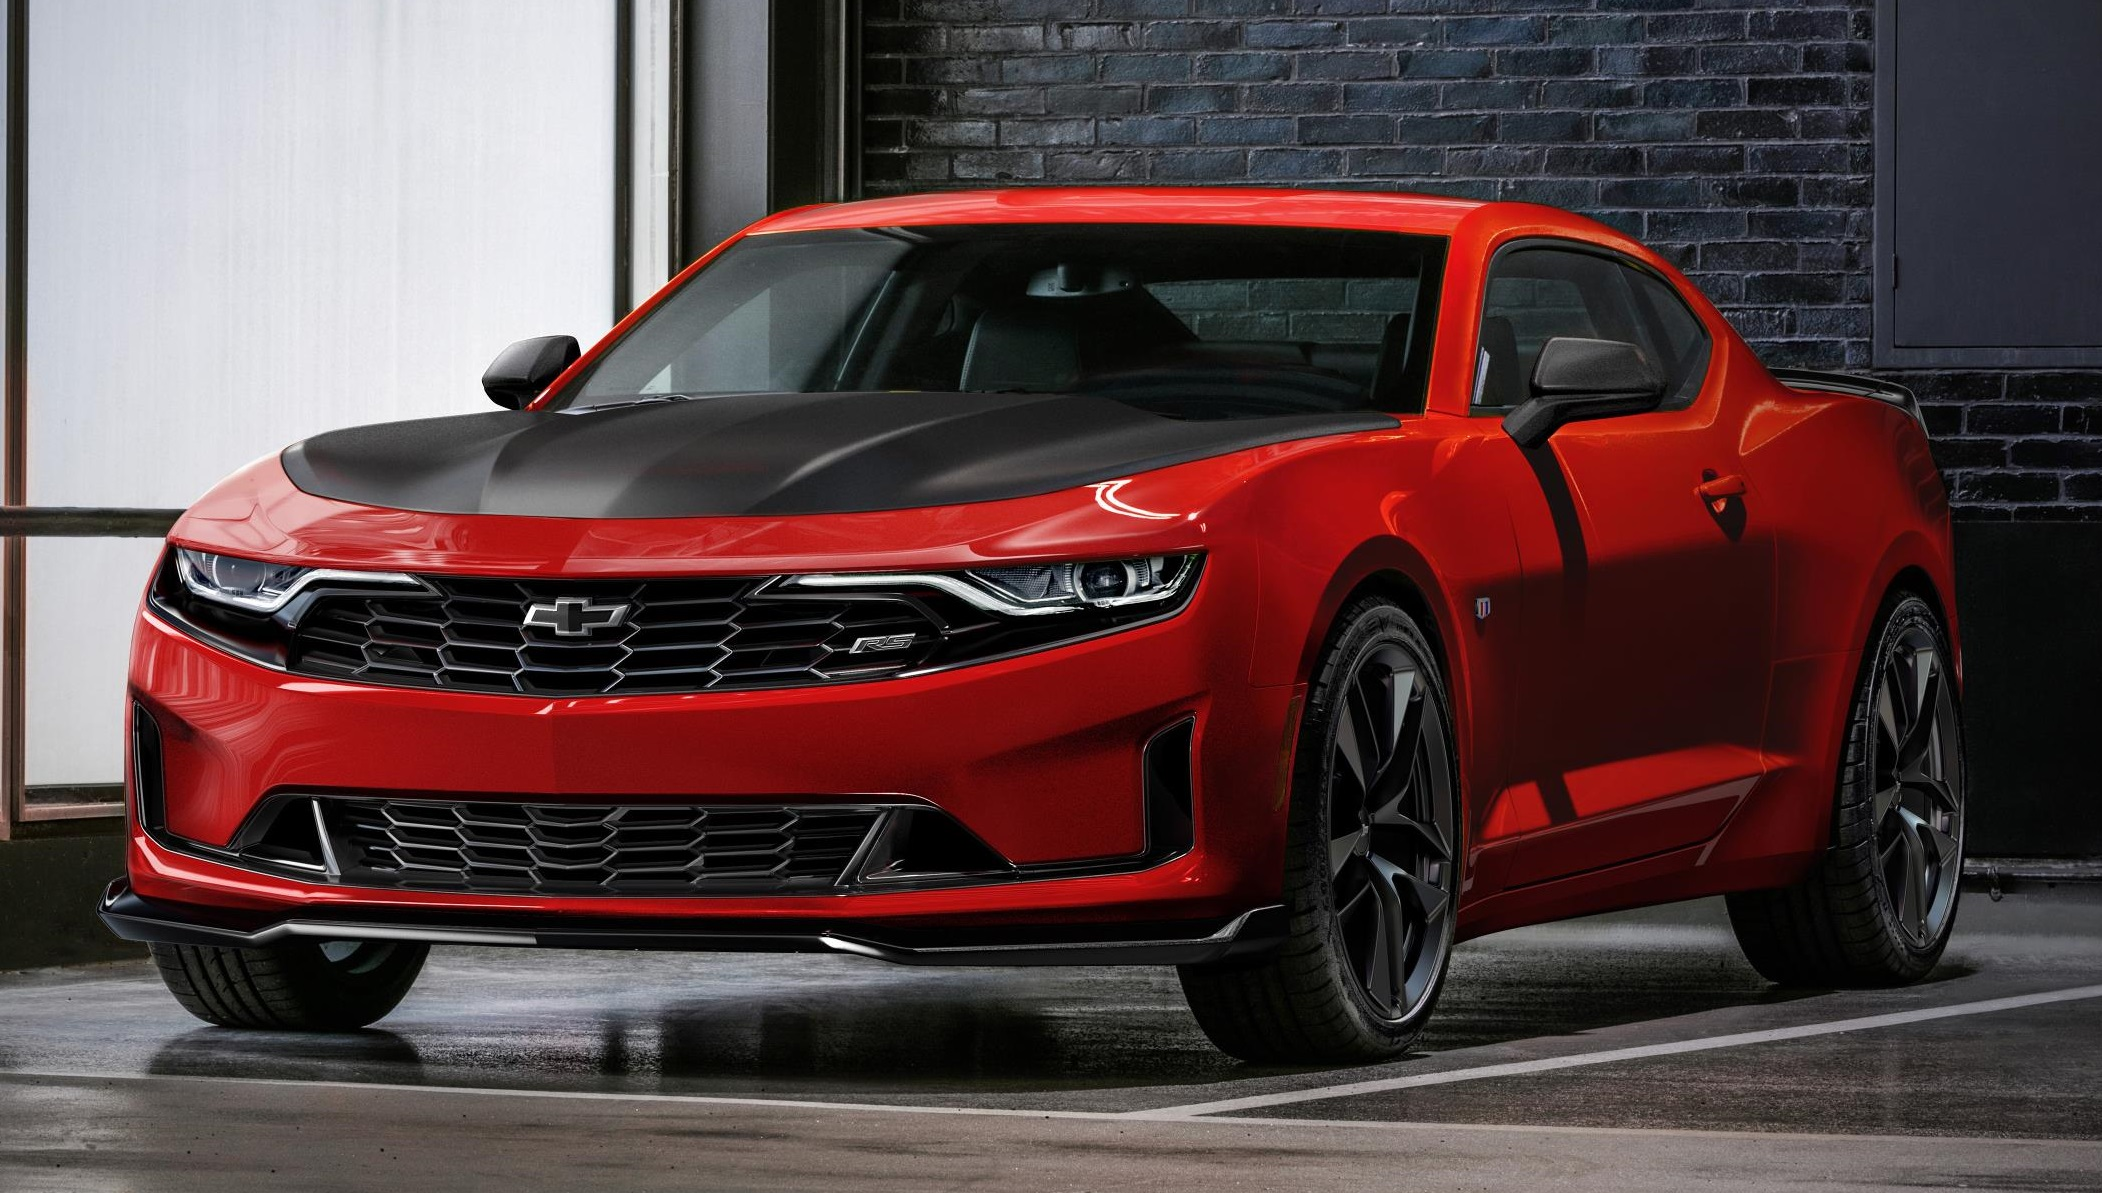 2019 Camaro Lineup Unveiled With New Looks And Tech